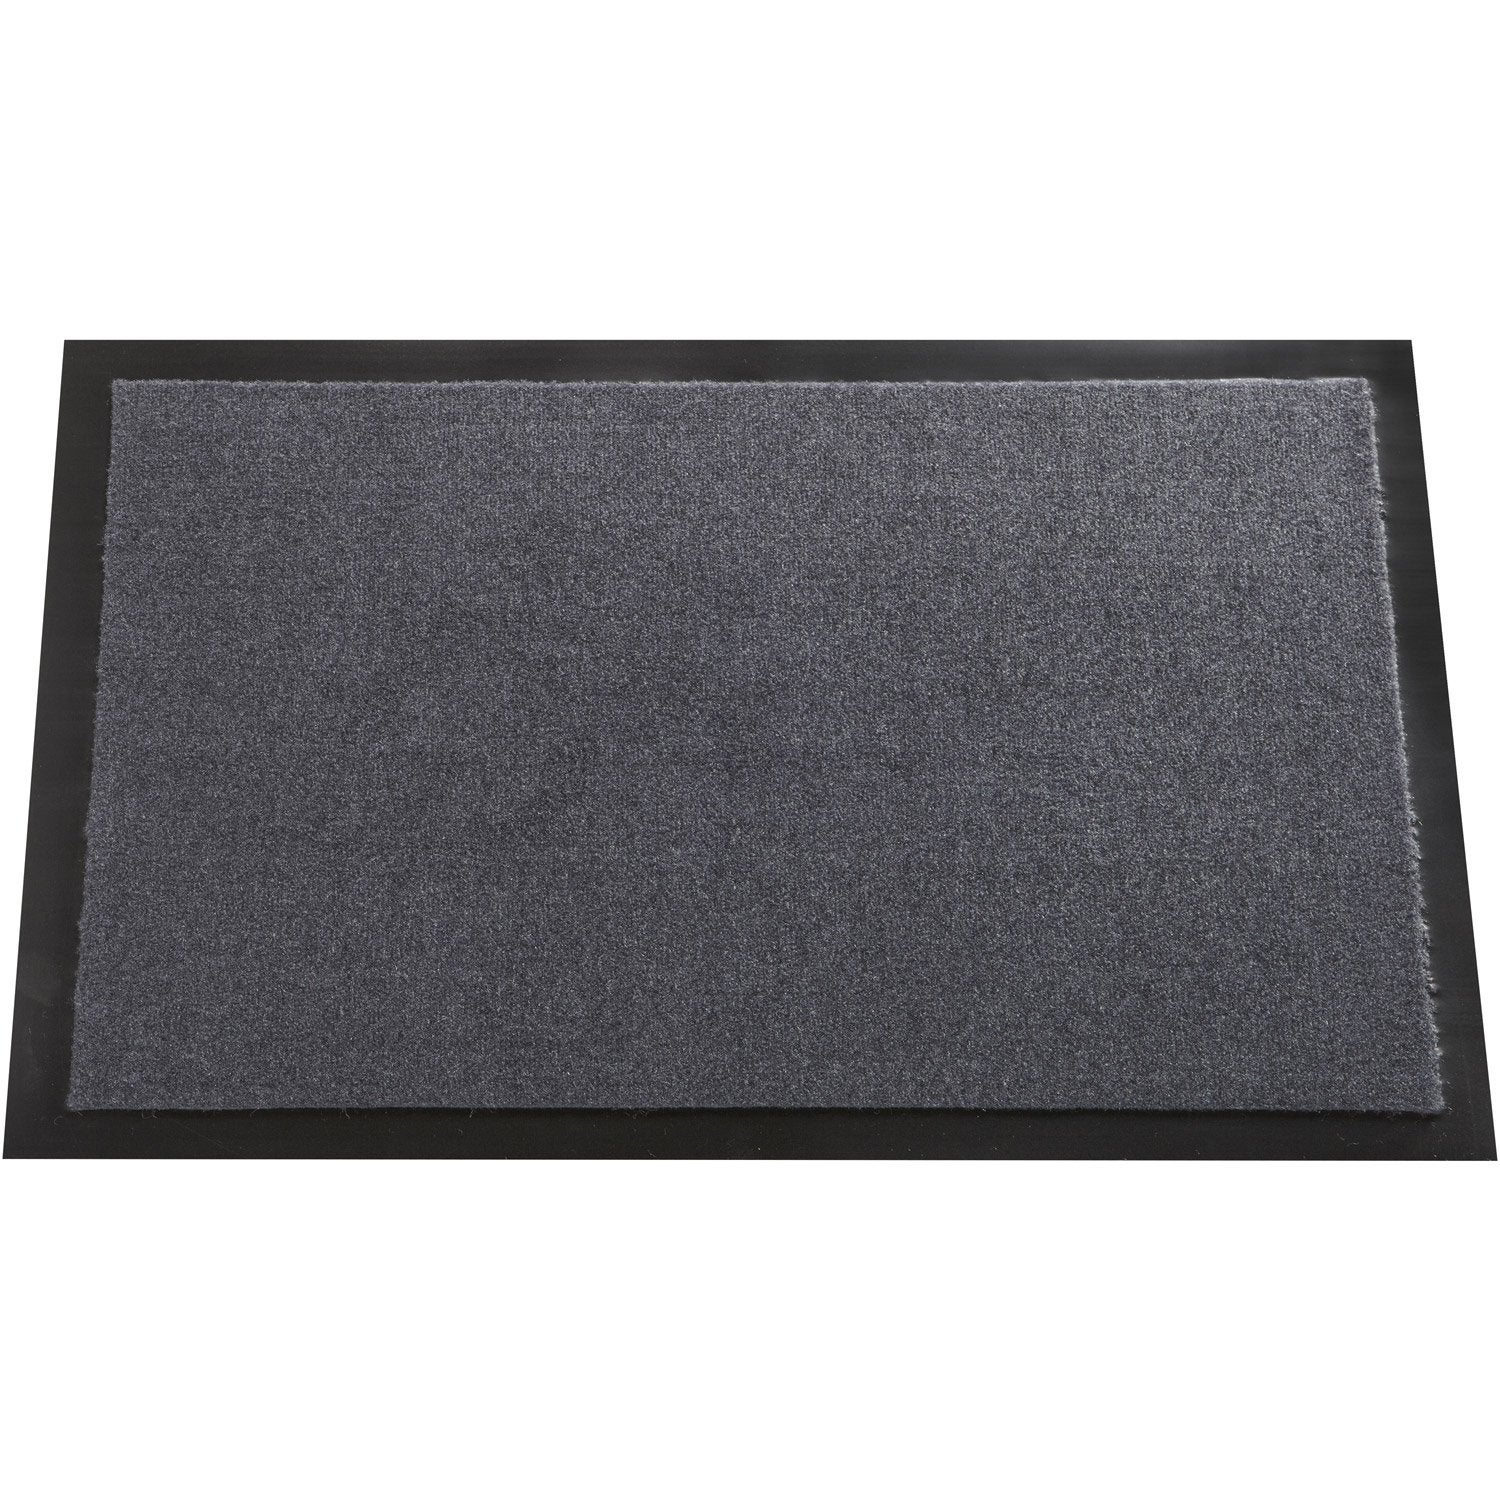 tapis exterieur leroy merlin maison design. Black Bedroom Furniture Sets. Home Design Ideas